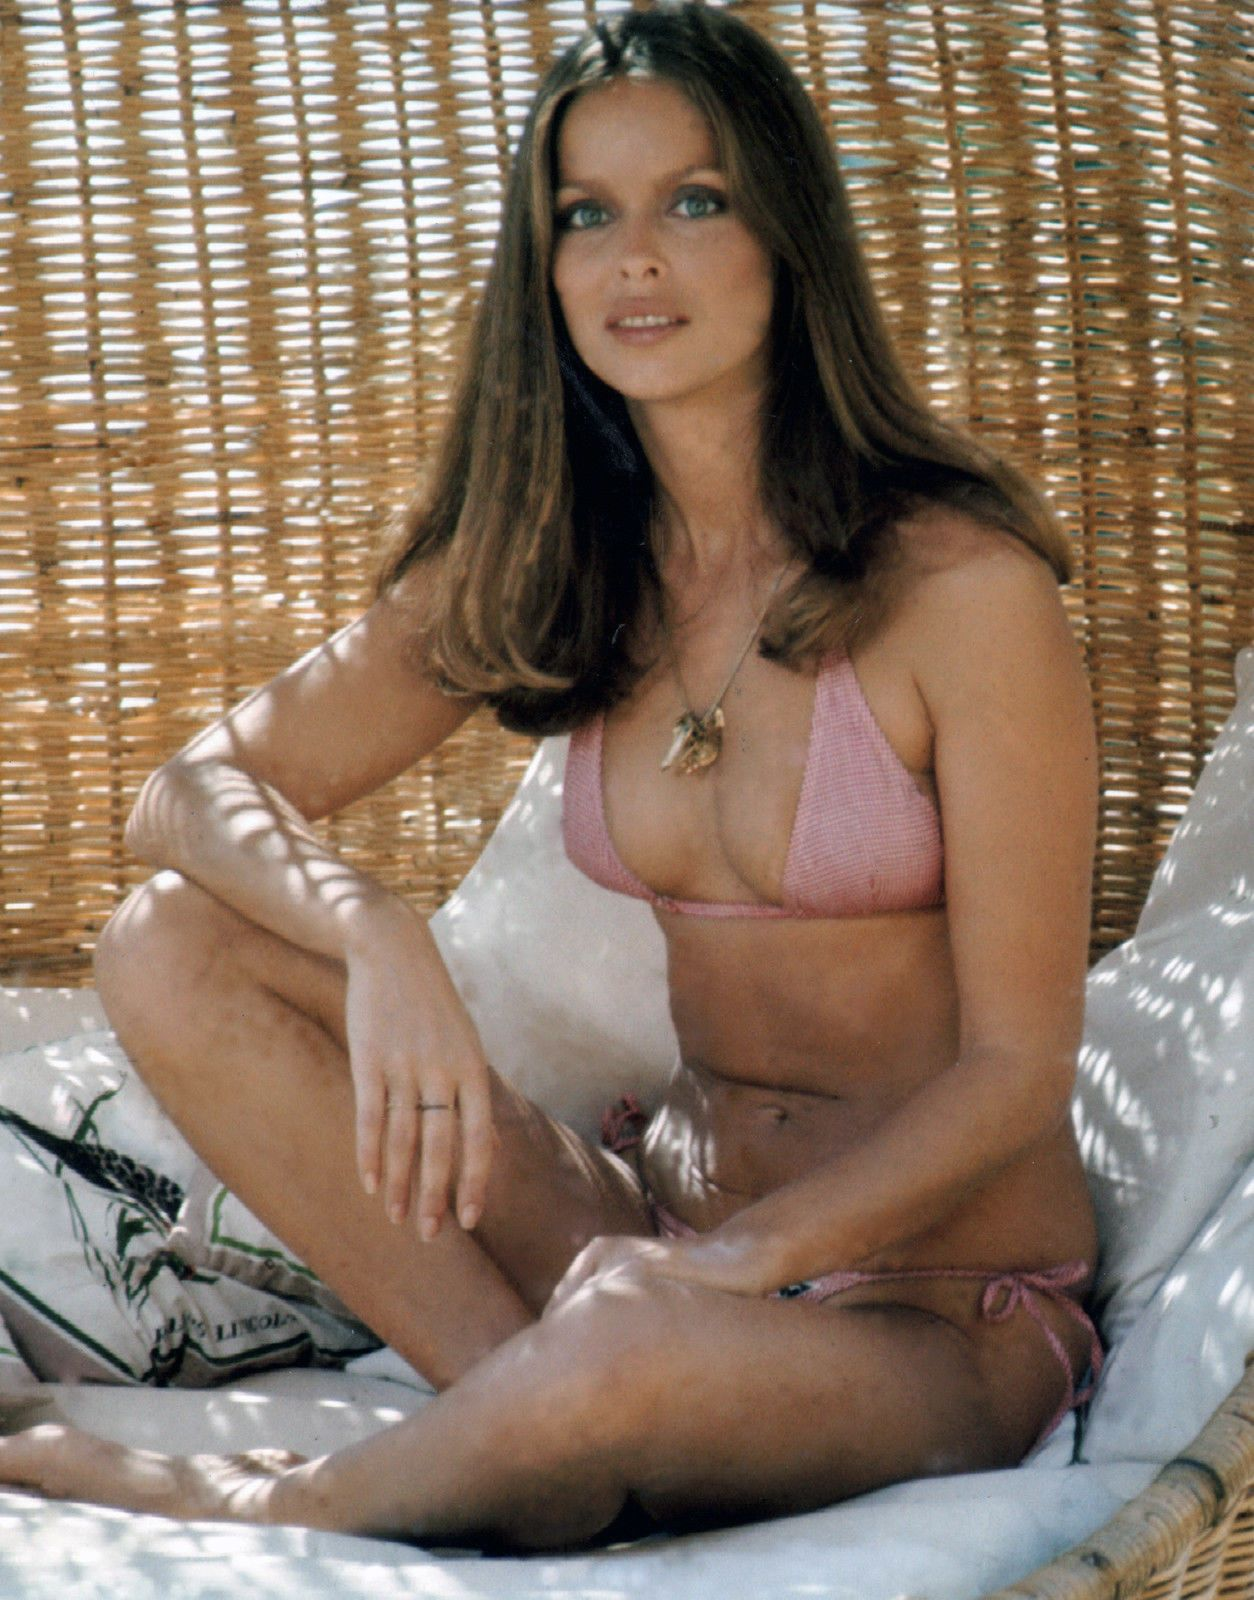 barbara bach heightbarbara bach interview, barbara bach photo, barbara bach and ringo starr, barbara bach height, barbara bach 2016, barbara bach instagram, barbara bach, barbara bach 2015, barbara bach 2014, barbara bach bond, barbara bach and ringo starr wedding, barbara bach actress, nadja summer & barbara bach, barbara bach today, barbara bach age, barbara bach net worth